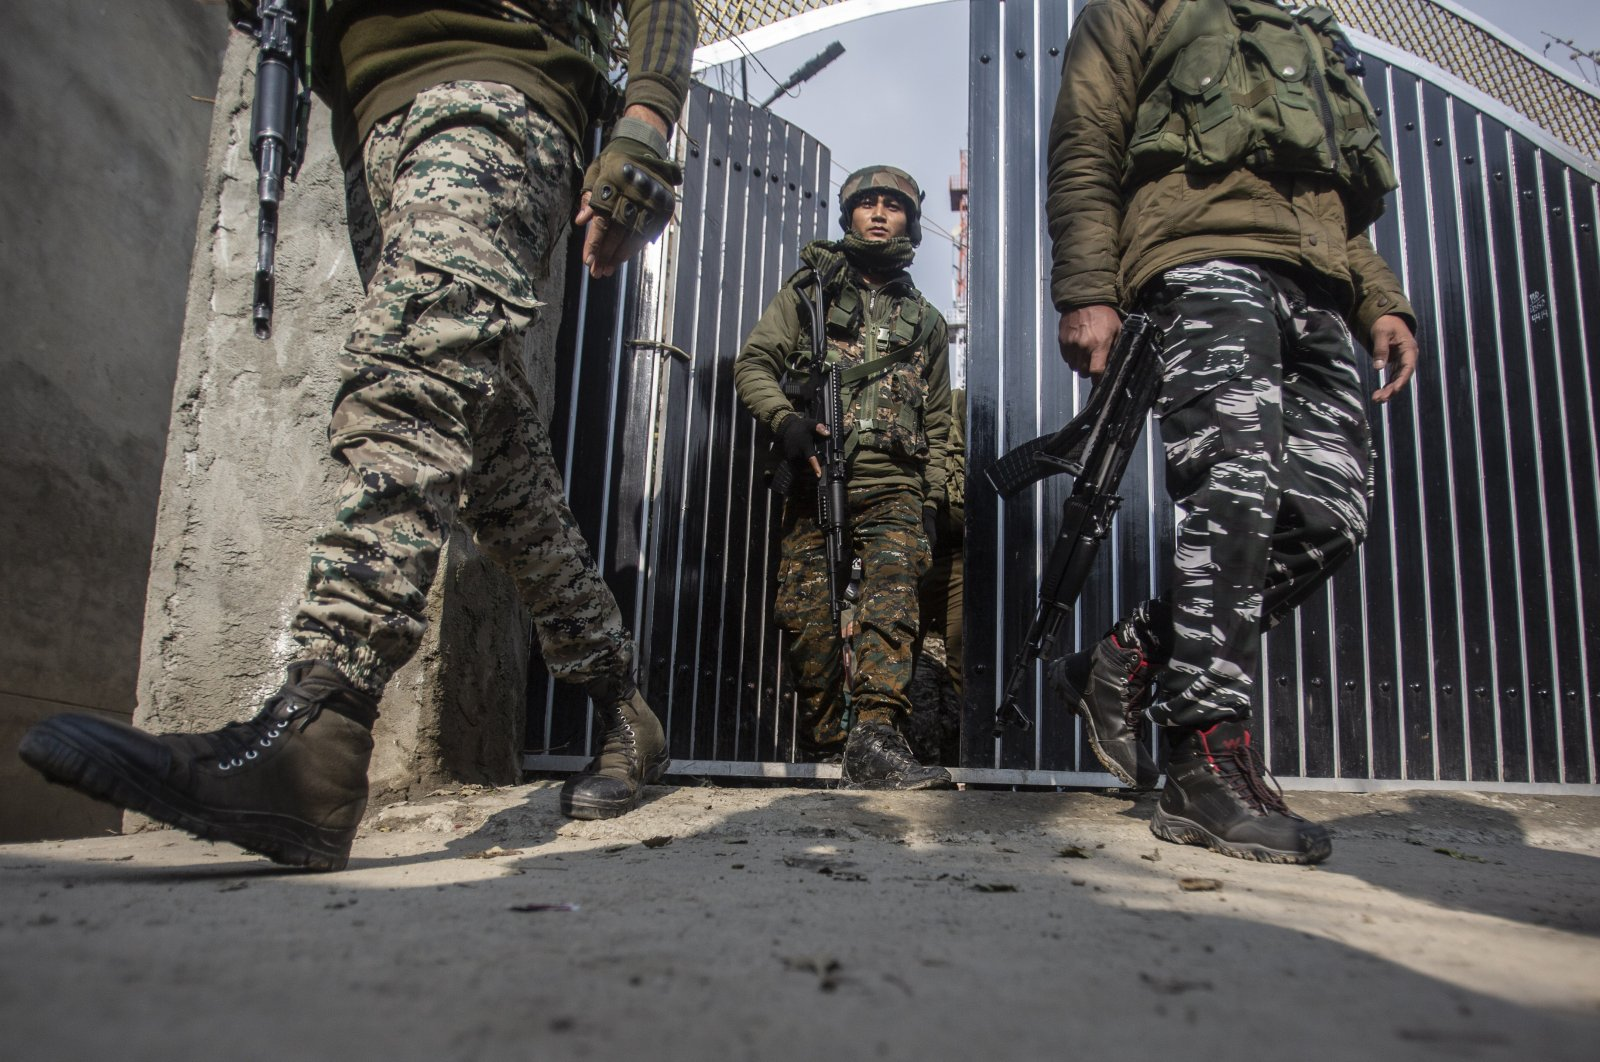 Indian soldiers come out of the house of a leader of the People's Democratic Party where a personal security officer was killed in a rebel attack in Srinagar, Indian controlled Kashmir, Dec. 14, 2020. (AP Photo)